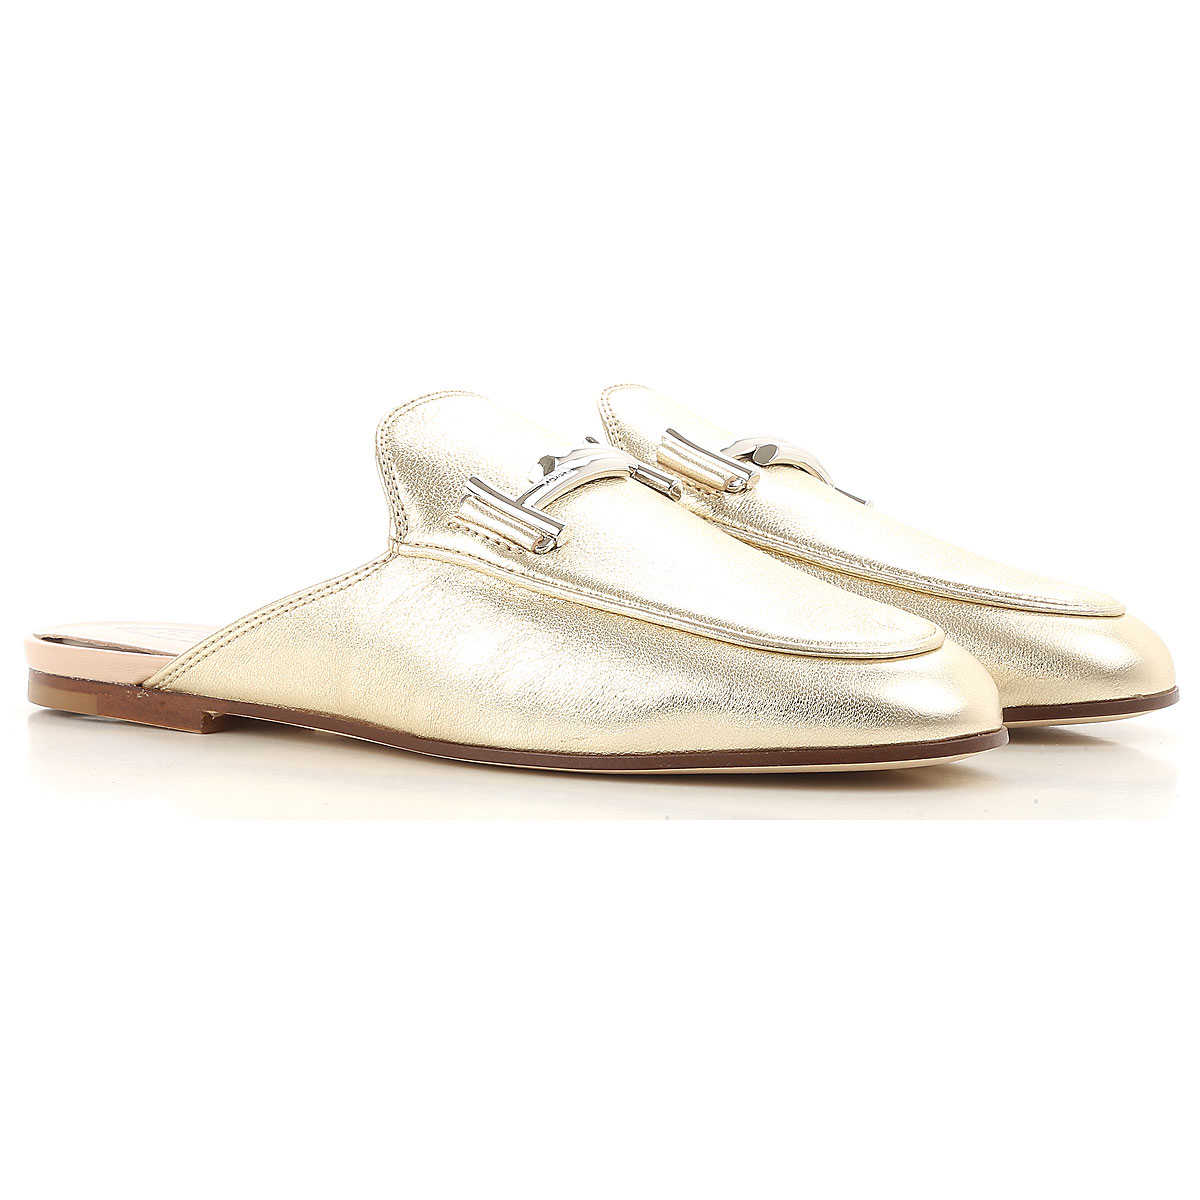 Tods Loafers for Women On Sale Platinum SE - GOOFASH